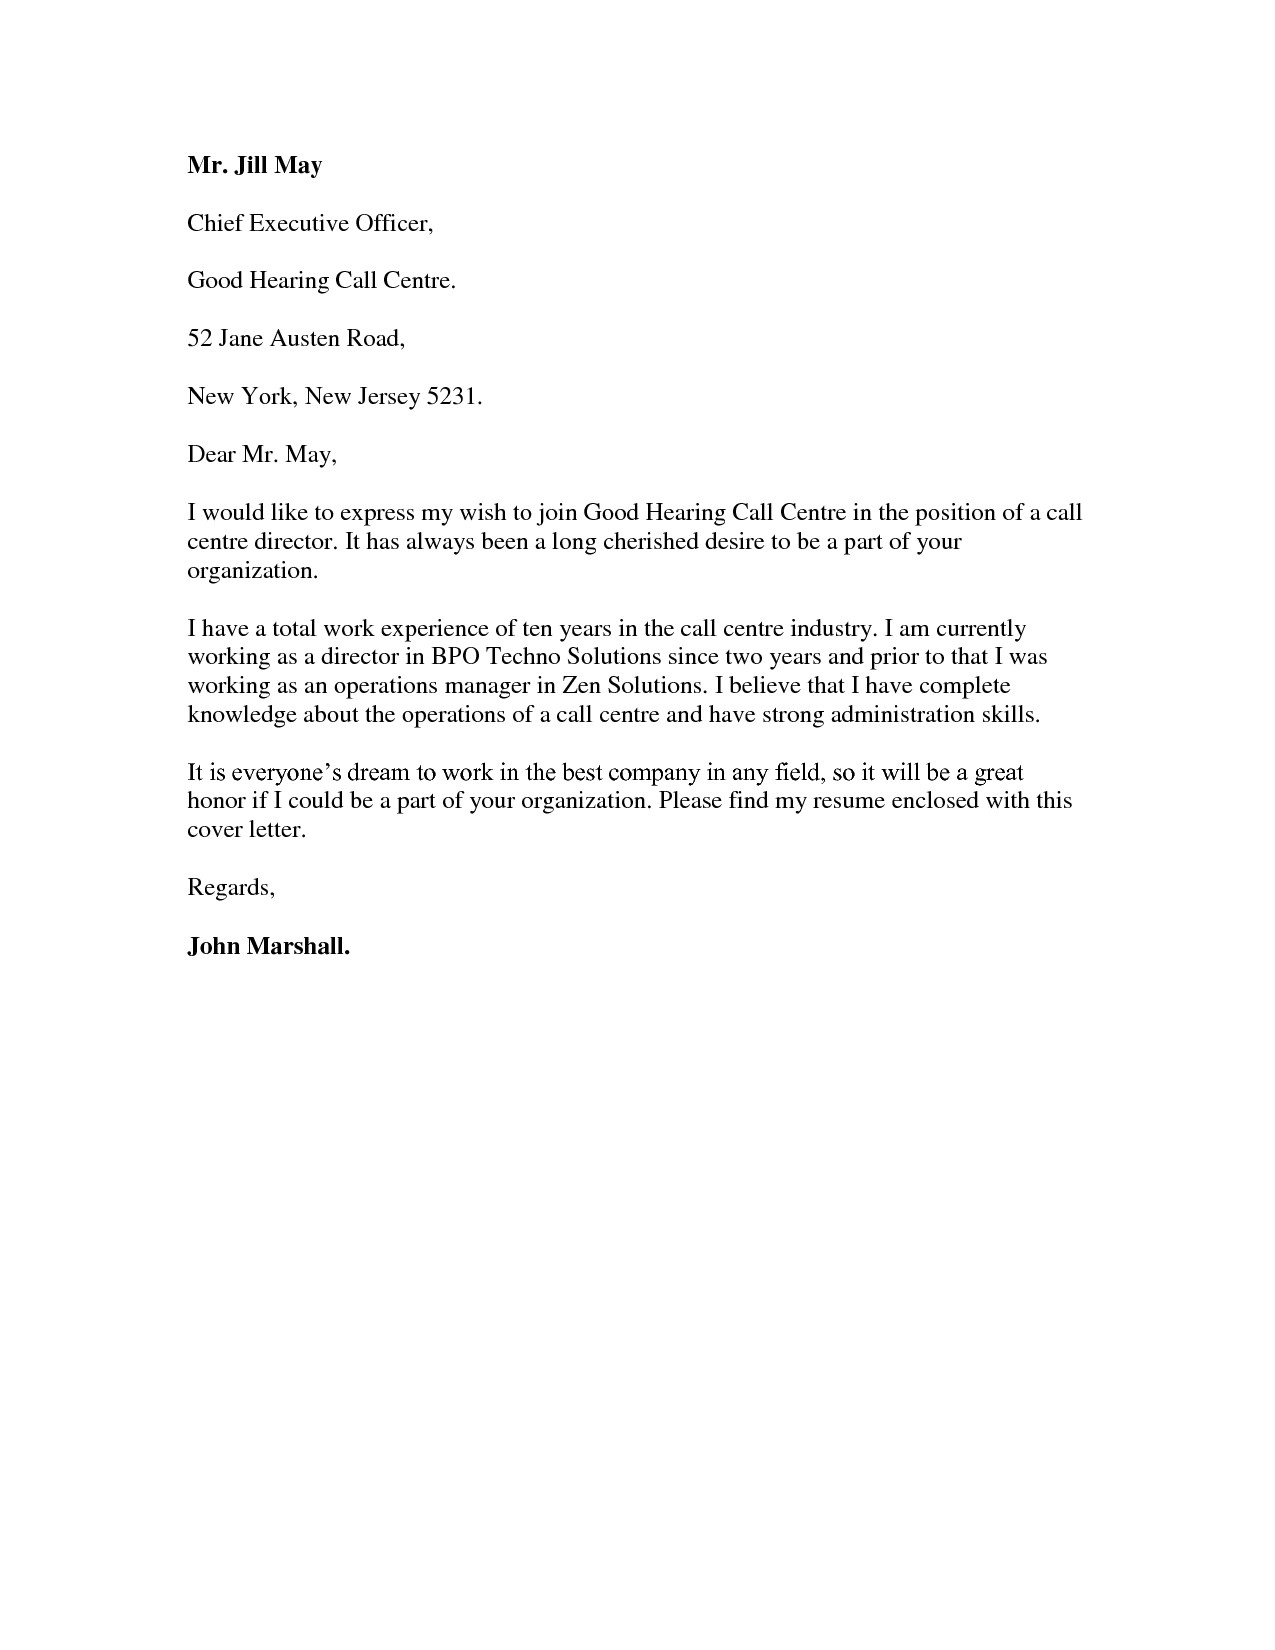 best ideas of job application letter sample for call center agent without about cover letter sample call centre